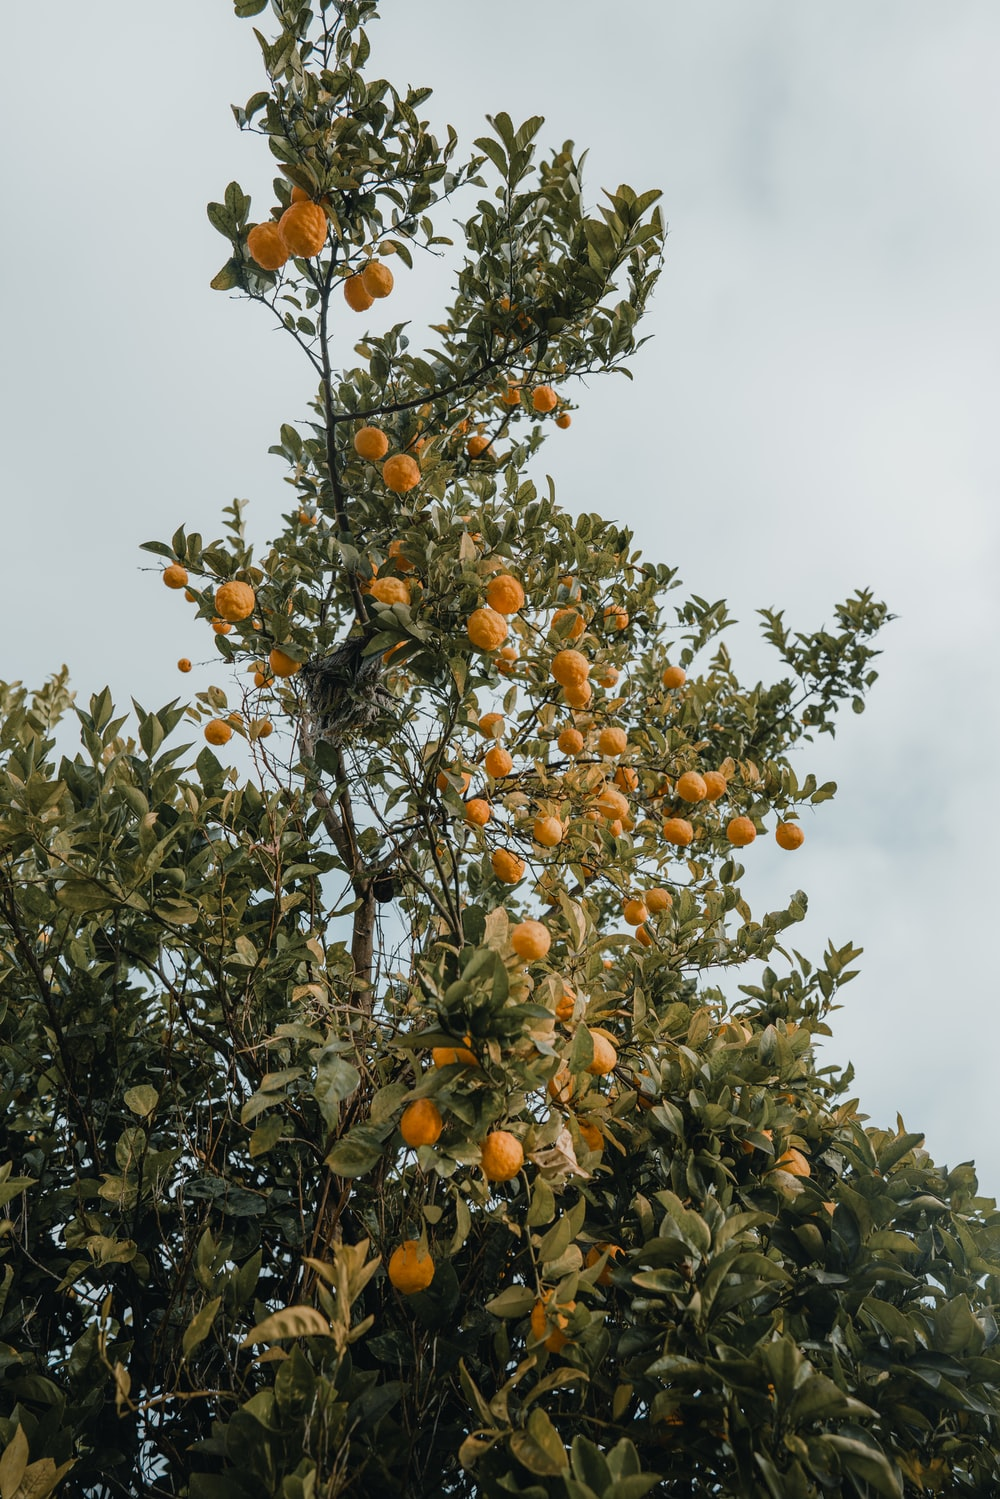 orange fruit tree during daytime